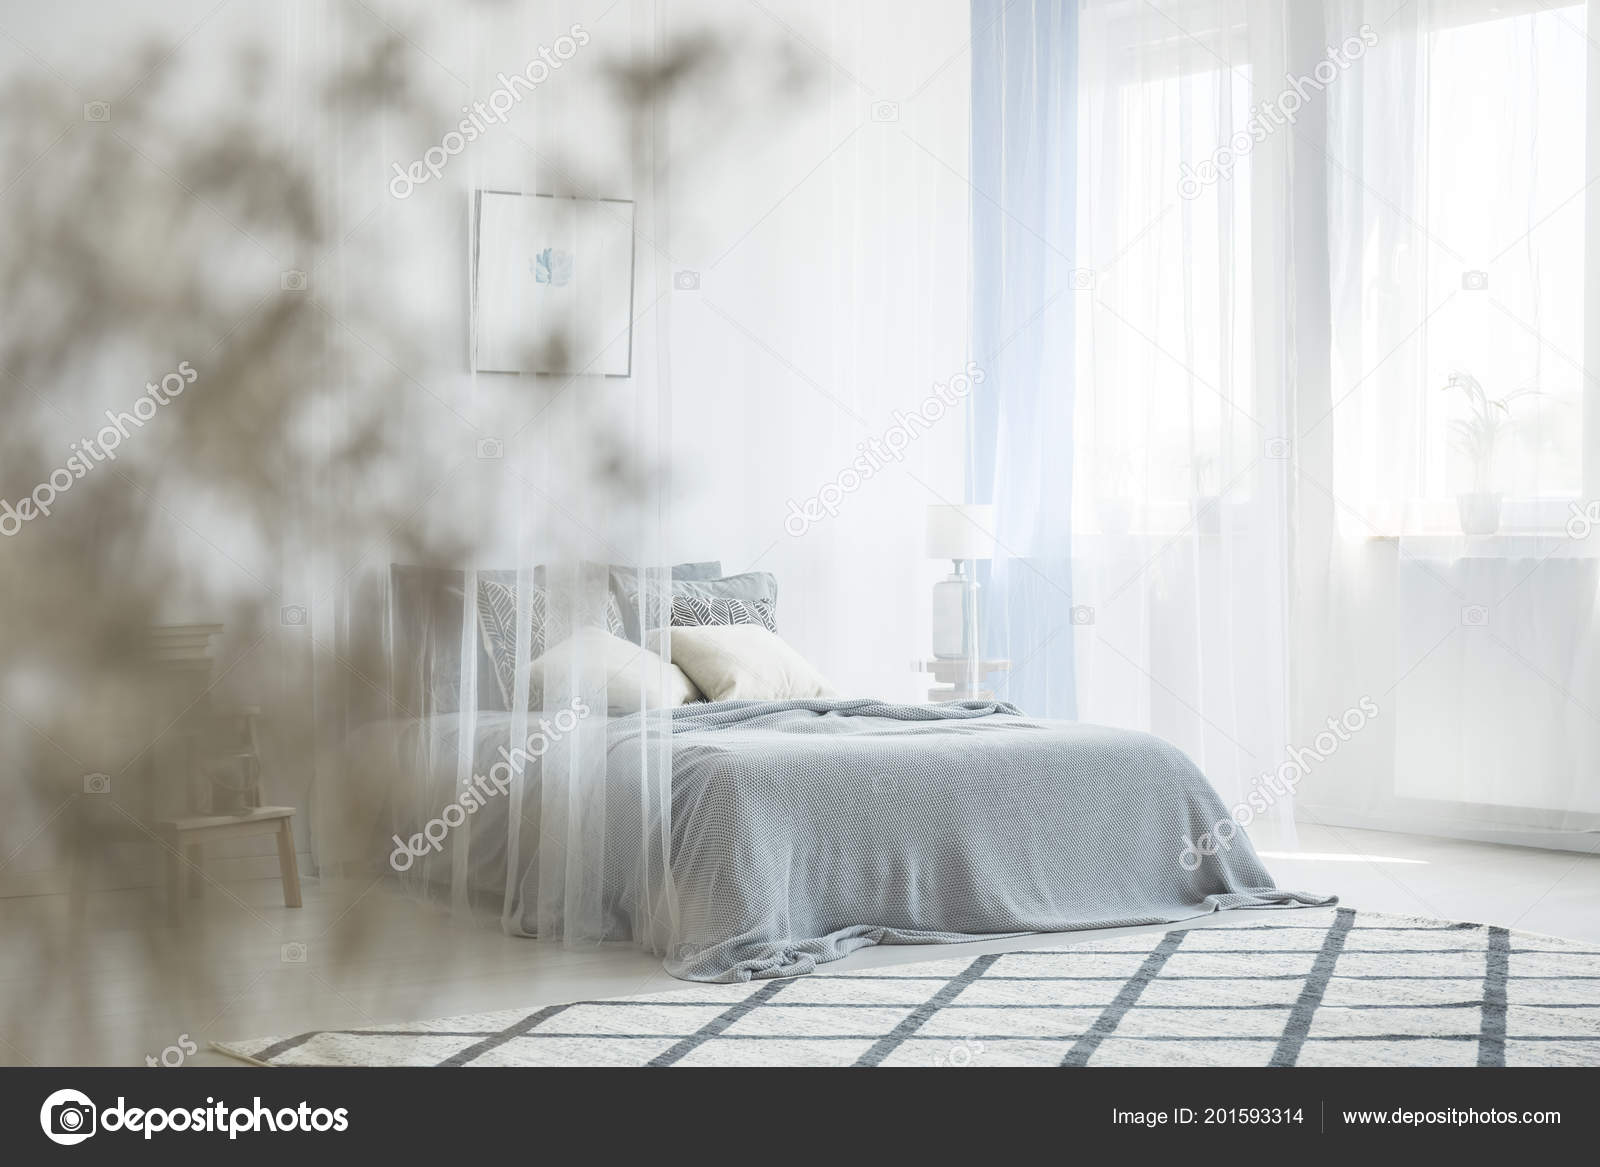 . White Bedroom Interior Carpet Window Drapes King Size Bed Canopy